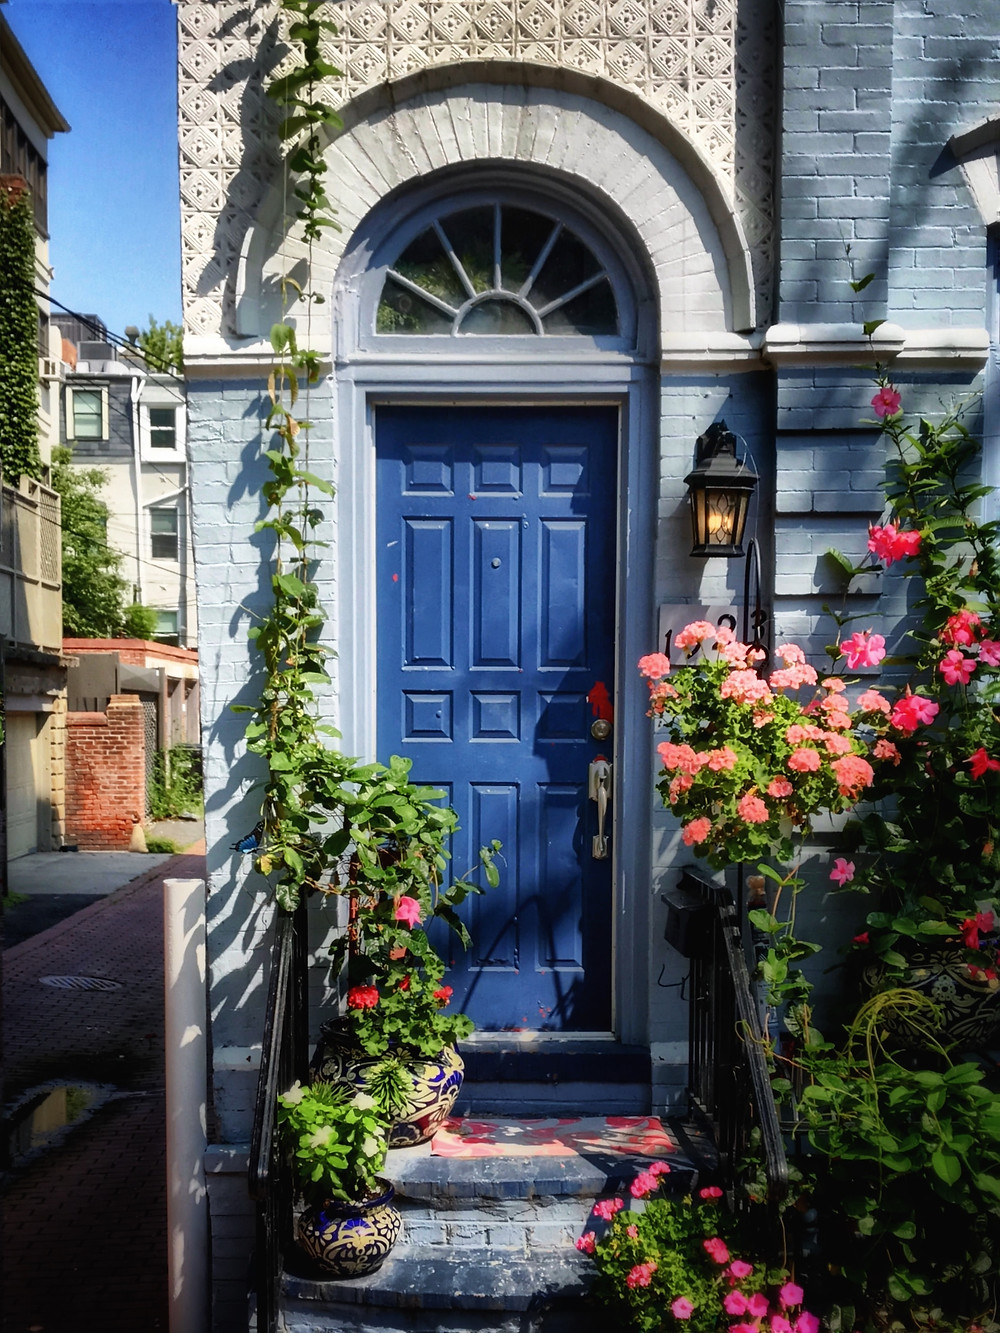 A blue front door with rose bushes around it.